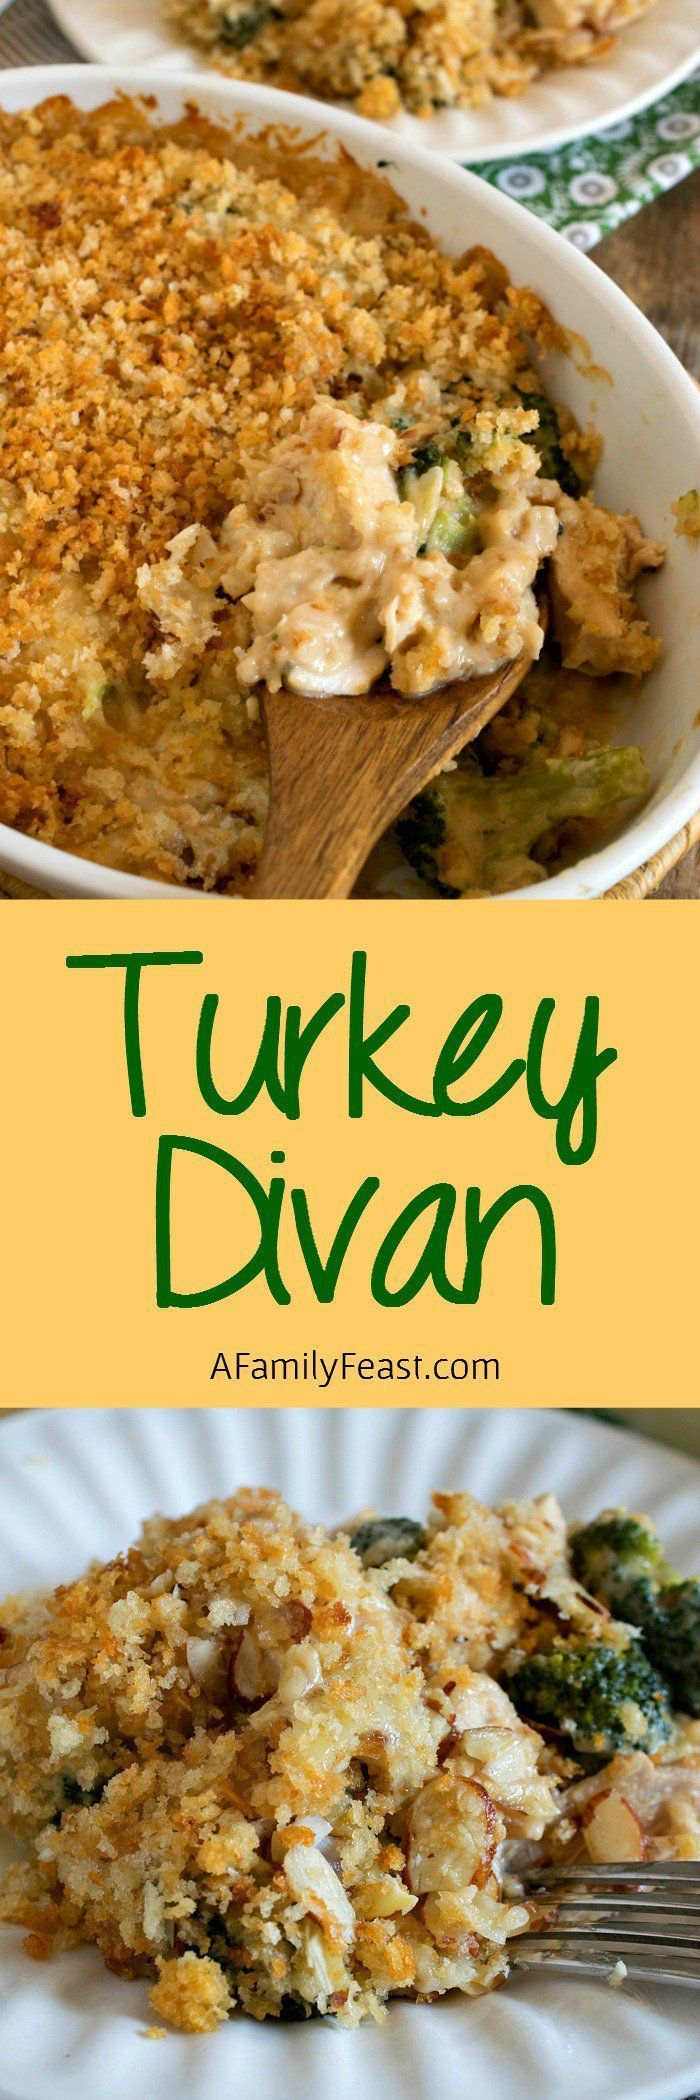 Our Turkey Divan recipe is a delicious from-scratch version of a classic dish that dates back to the early 1900's. Perfect for Thanksgiving leftovers.